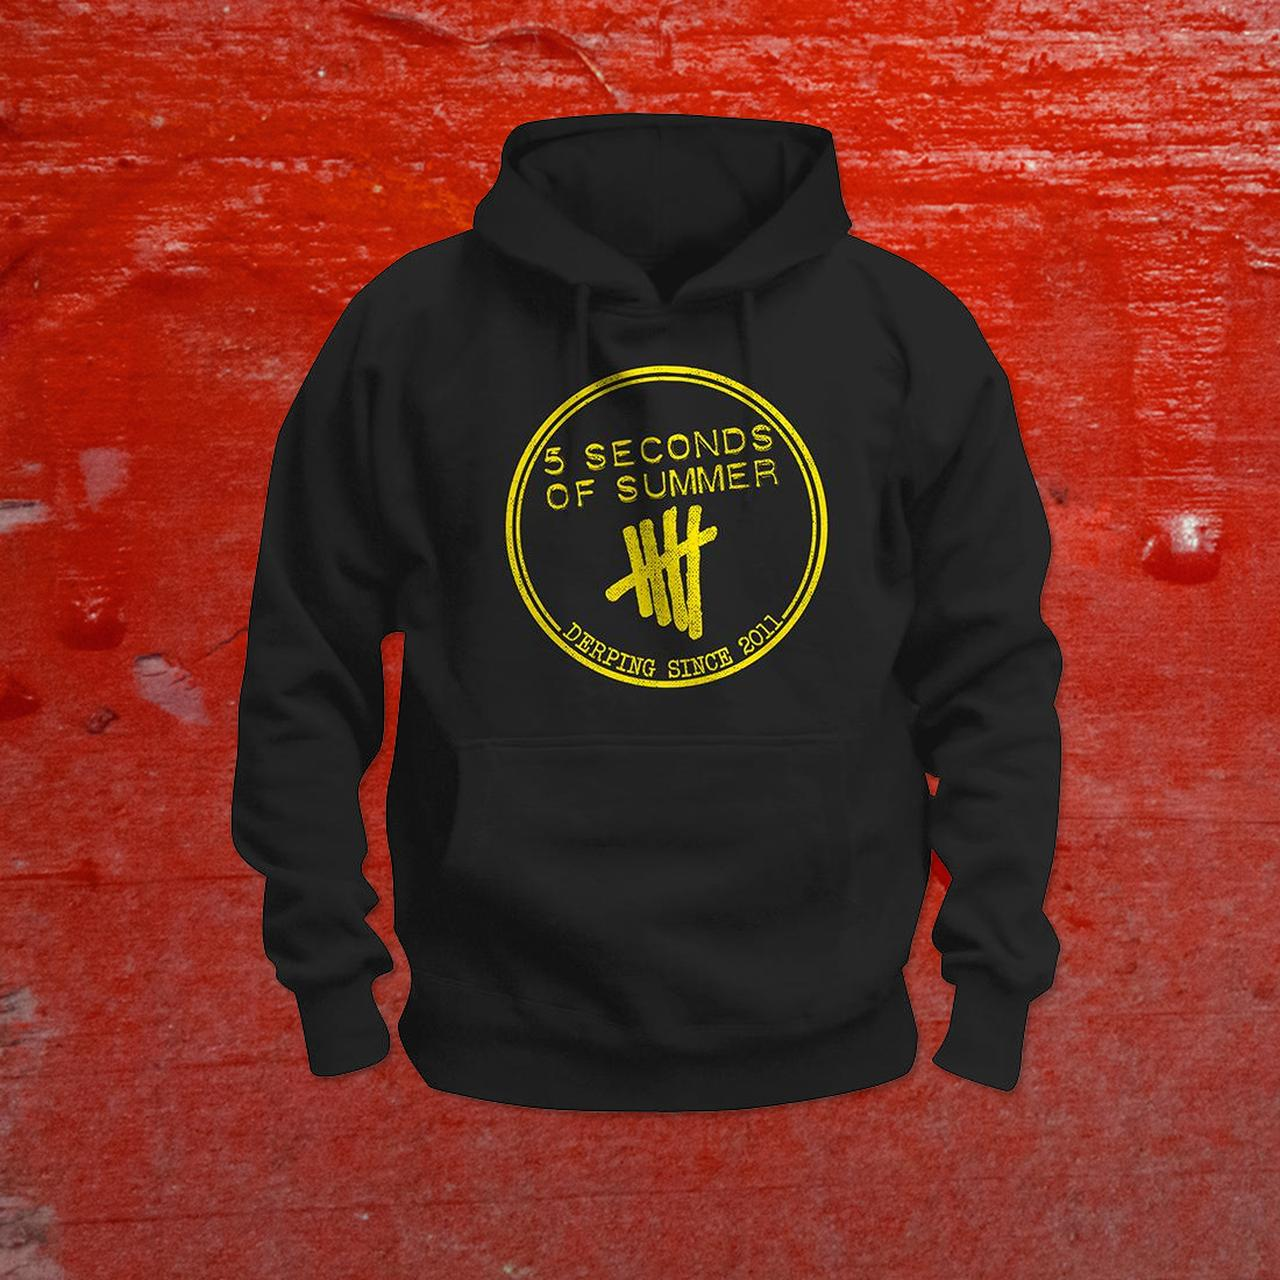 This 5 Seconds of Summer fan hoodie makes the perfect 5 SOS gift for teen girls, tweens, and anyone who loves their music. It has the 5SOS band member names written in helvetica and ampersand typography: Calum, Ashton, Michael, and Luke.